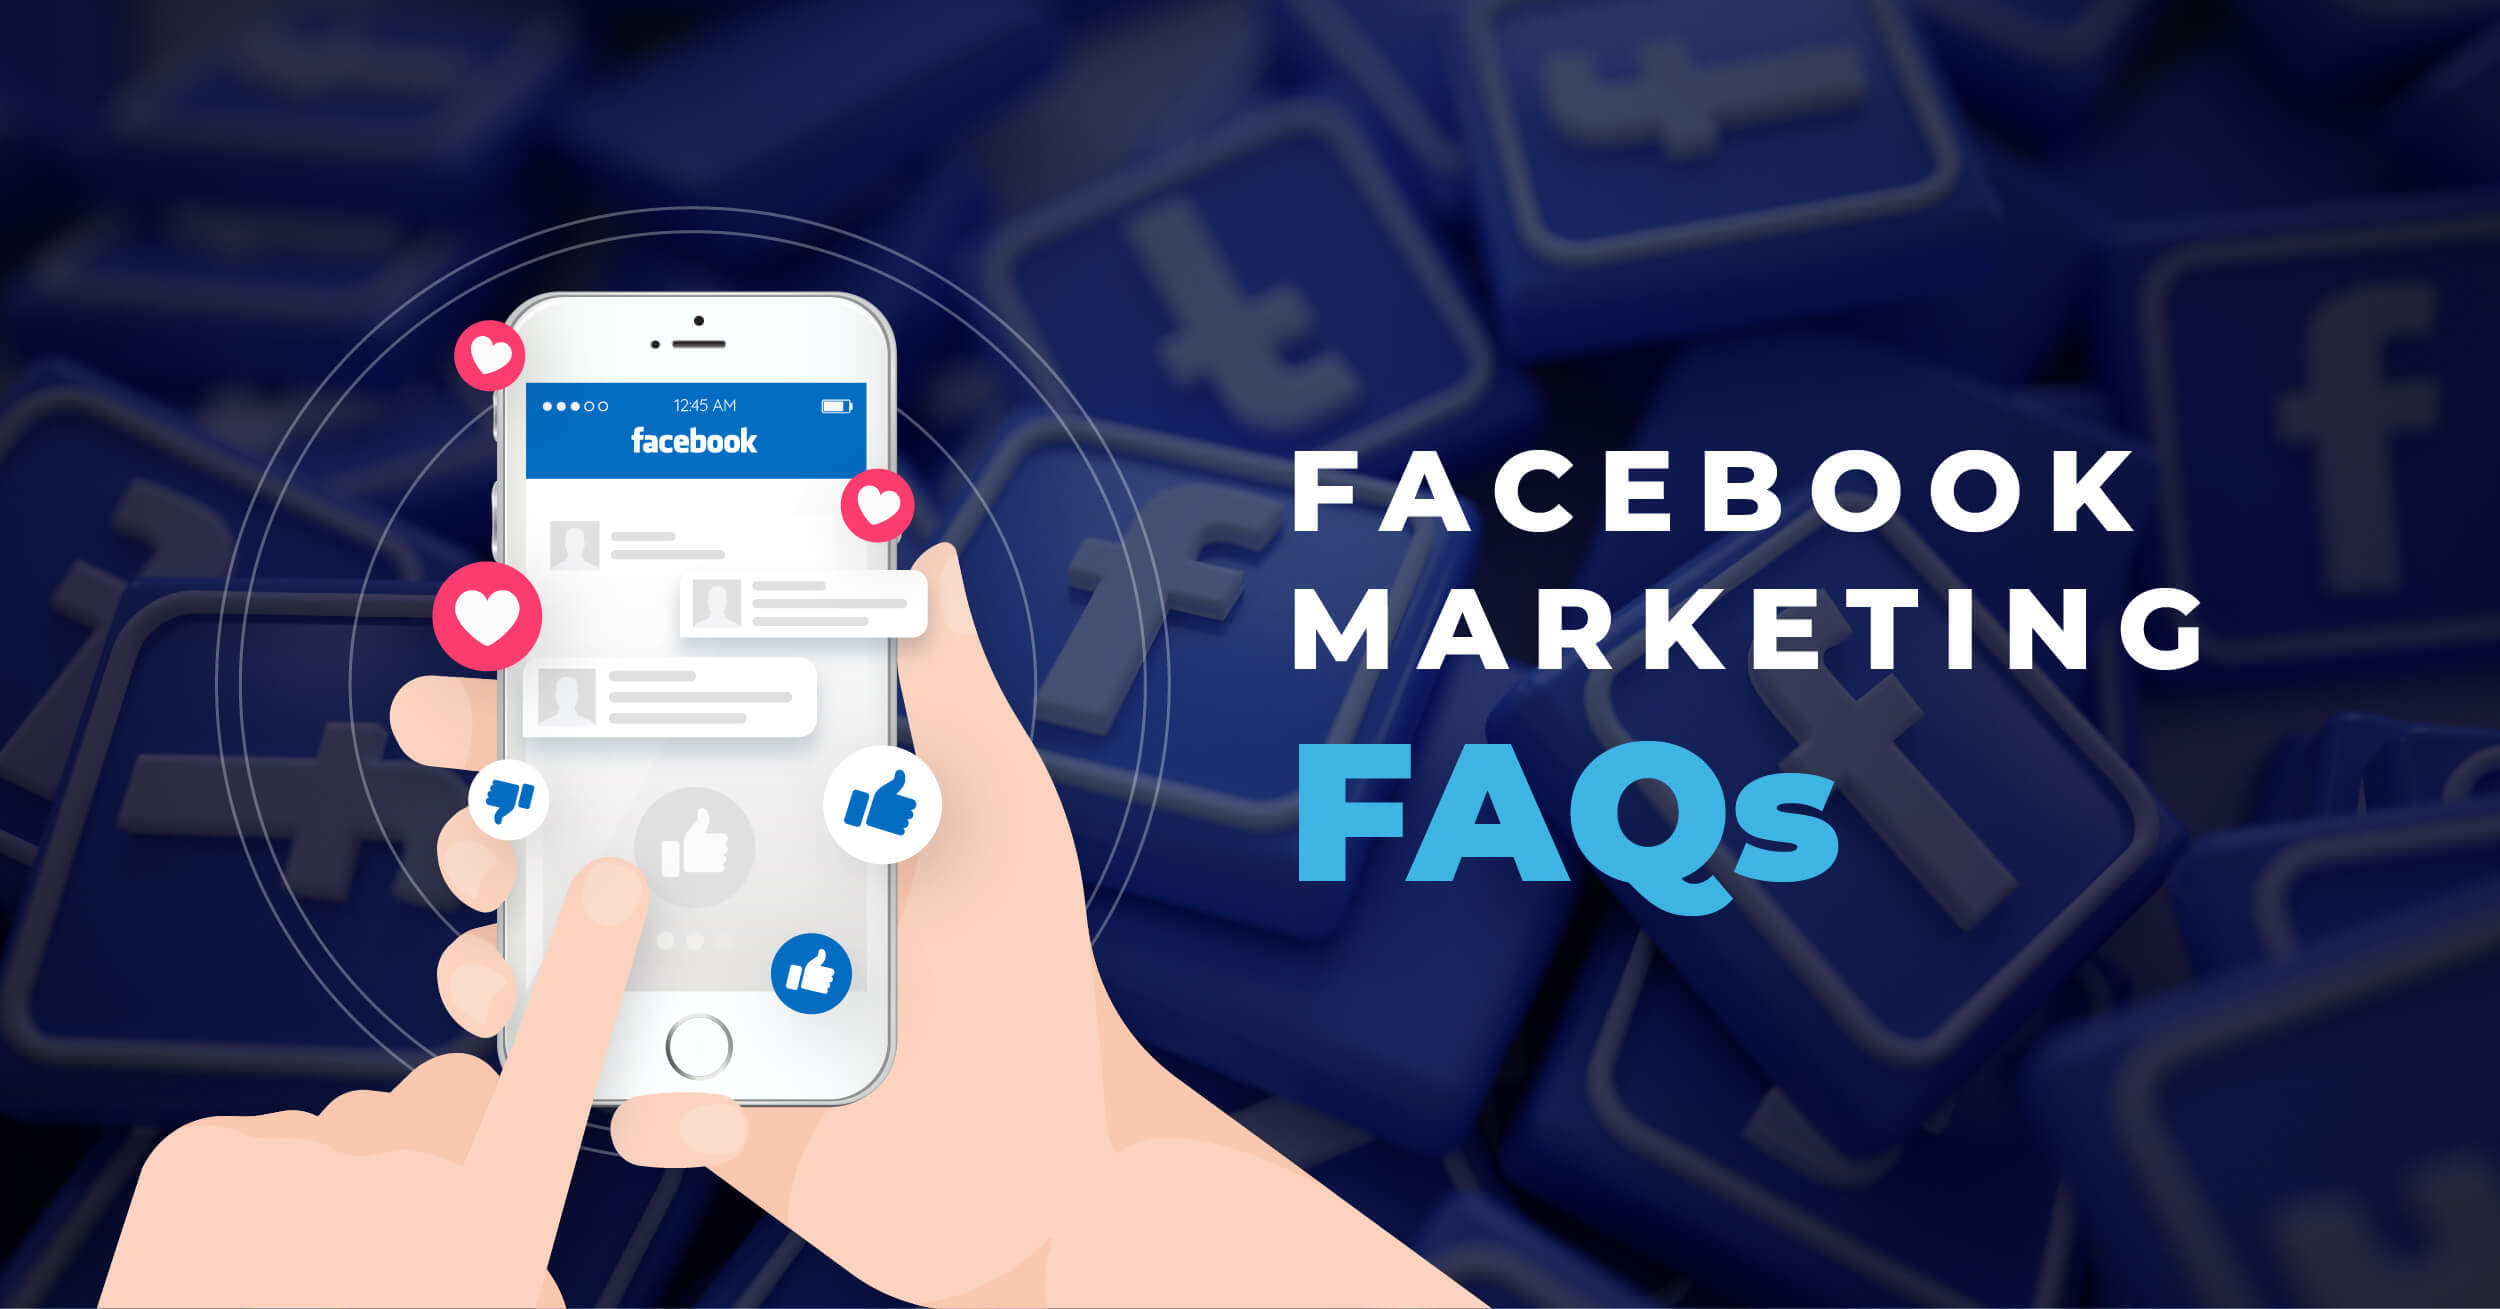 Facebook Marketing FAQs explained written on a picture of hands holding a phone with Facebook opened